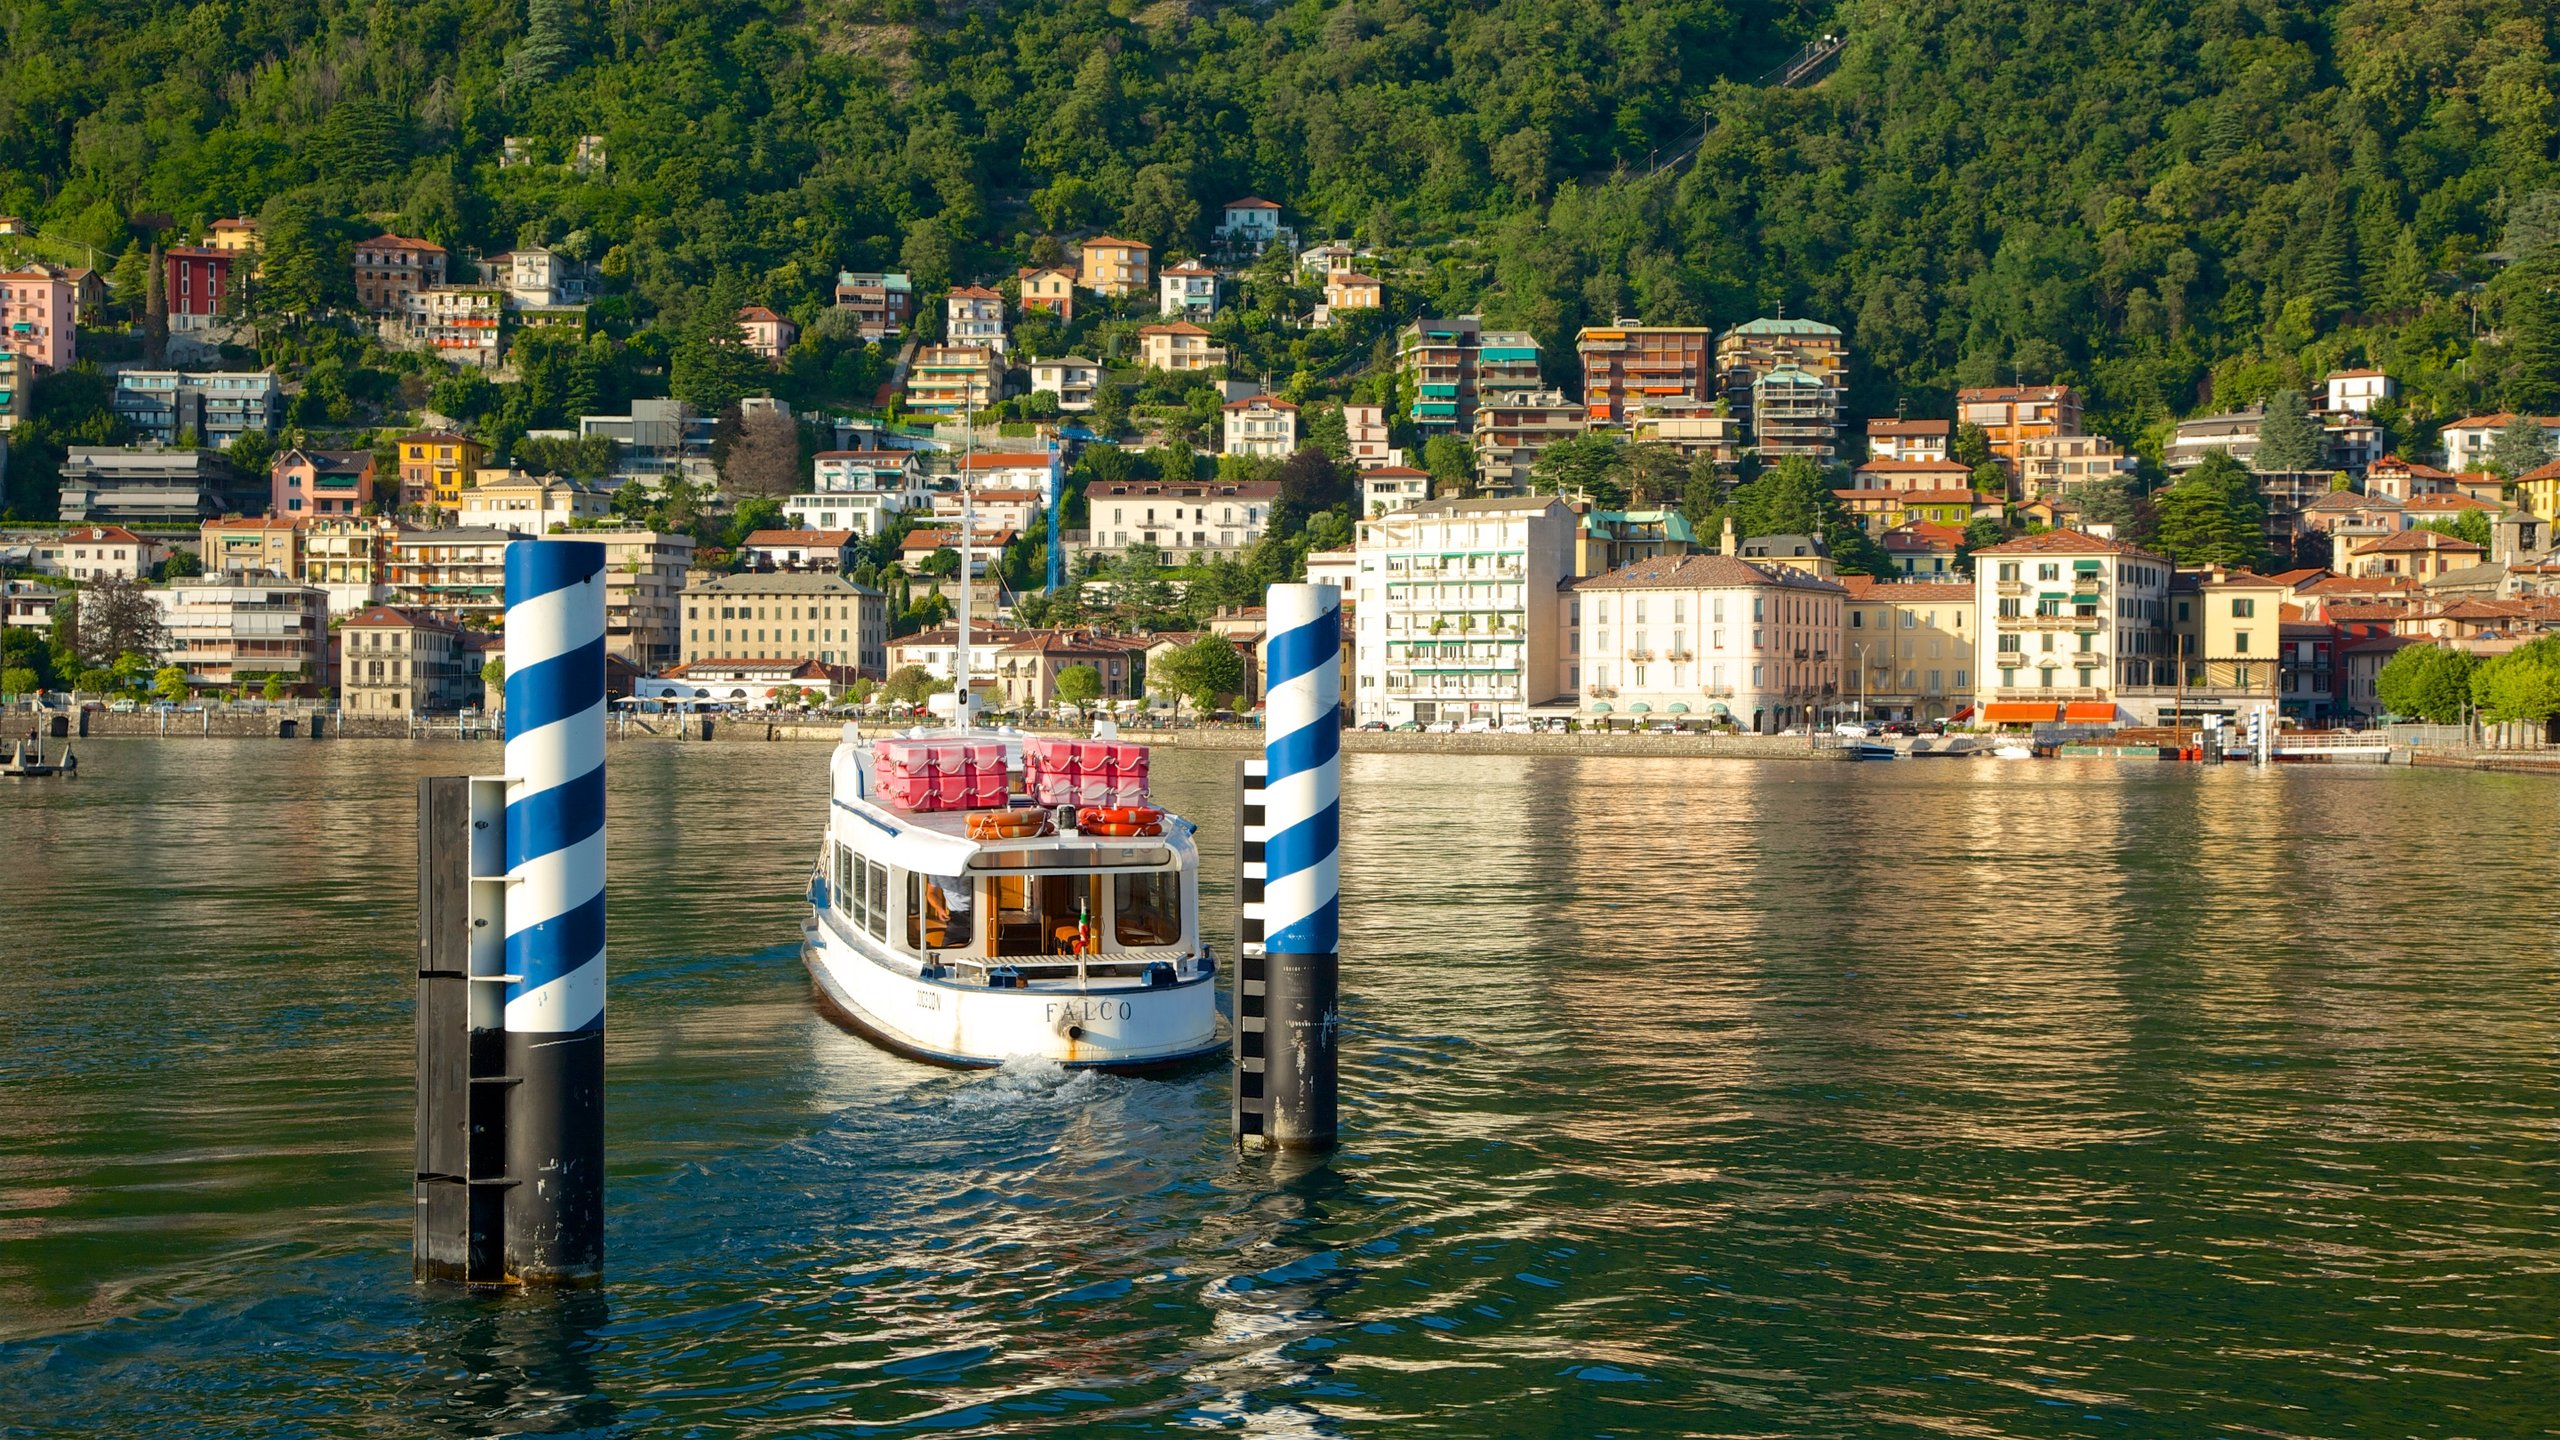 Uninterrupted views of Lake Como, architecturally impressive landmarks and people watching from café terraces make this one of Como's most popular squares.